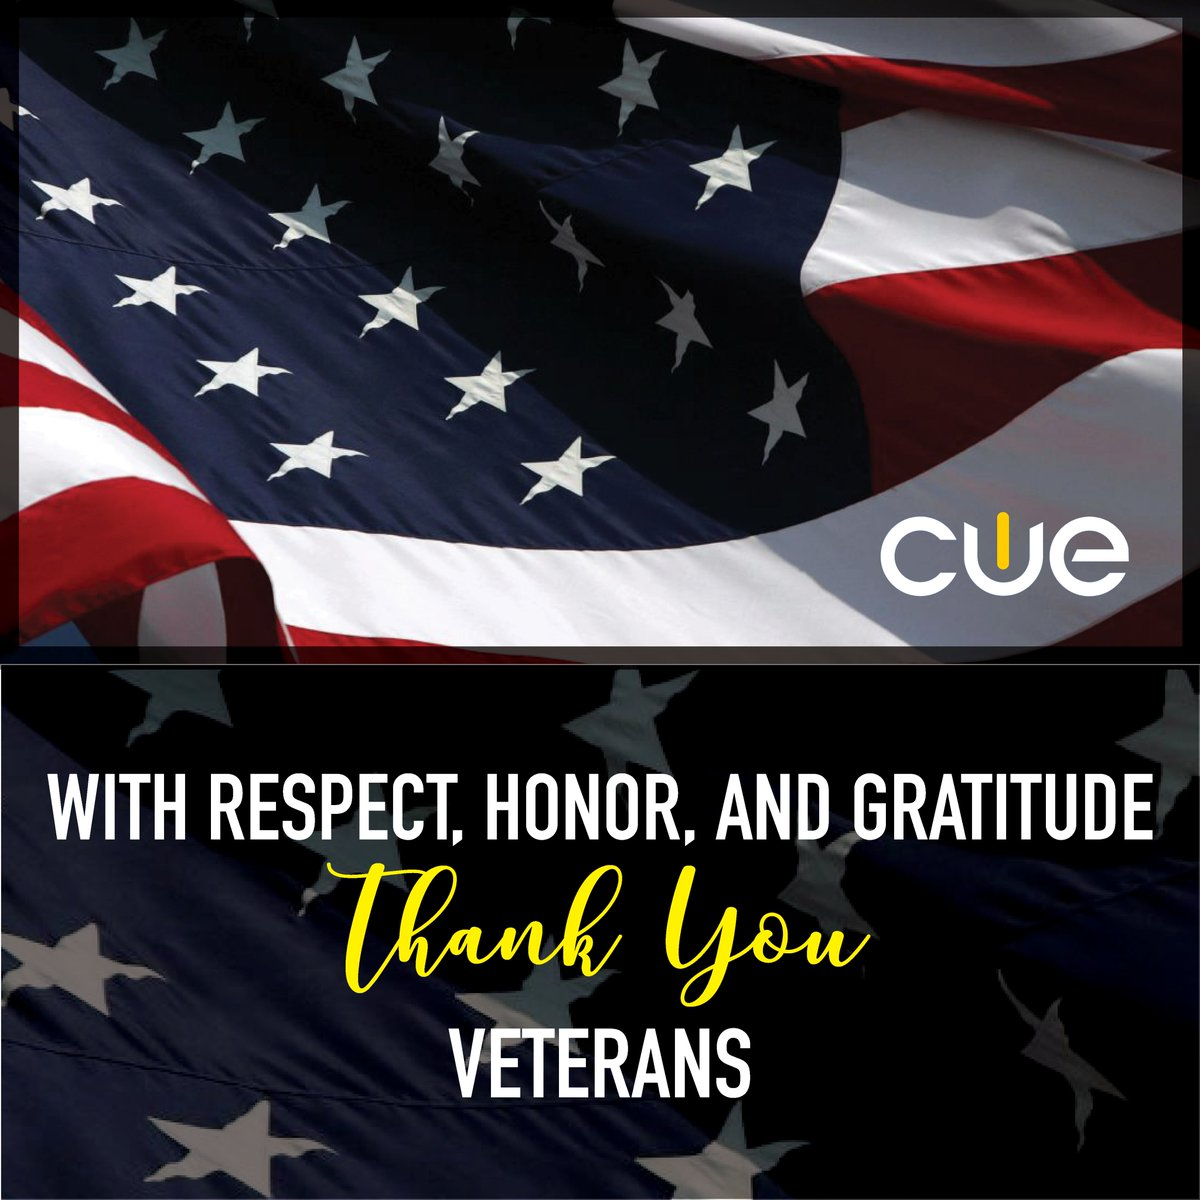 To all those who have served, we thank you! #VeteransDay2020